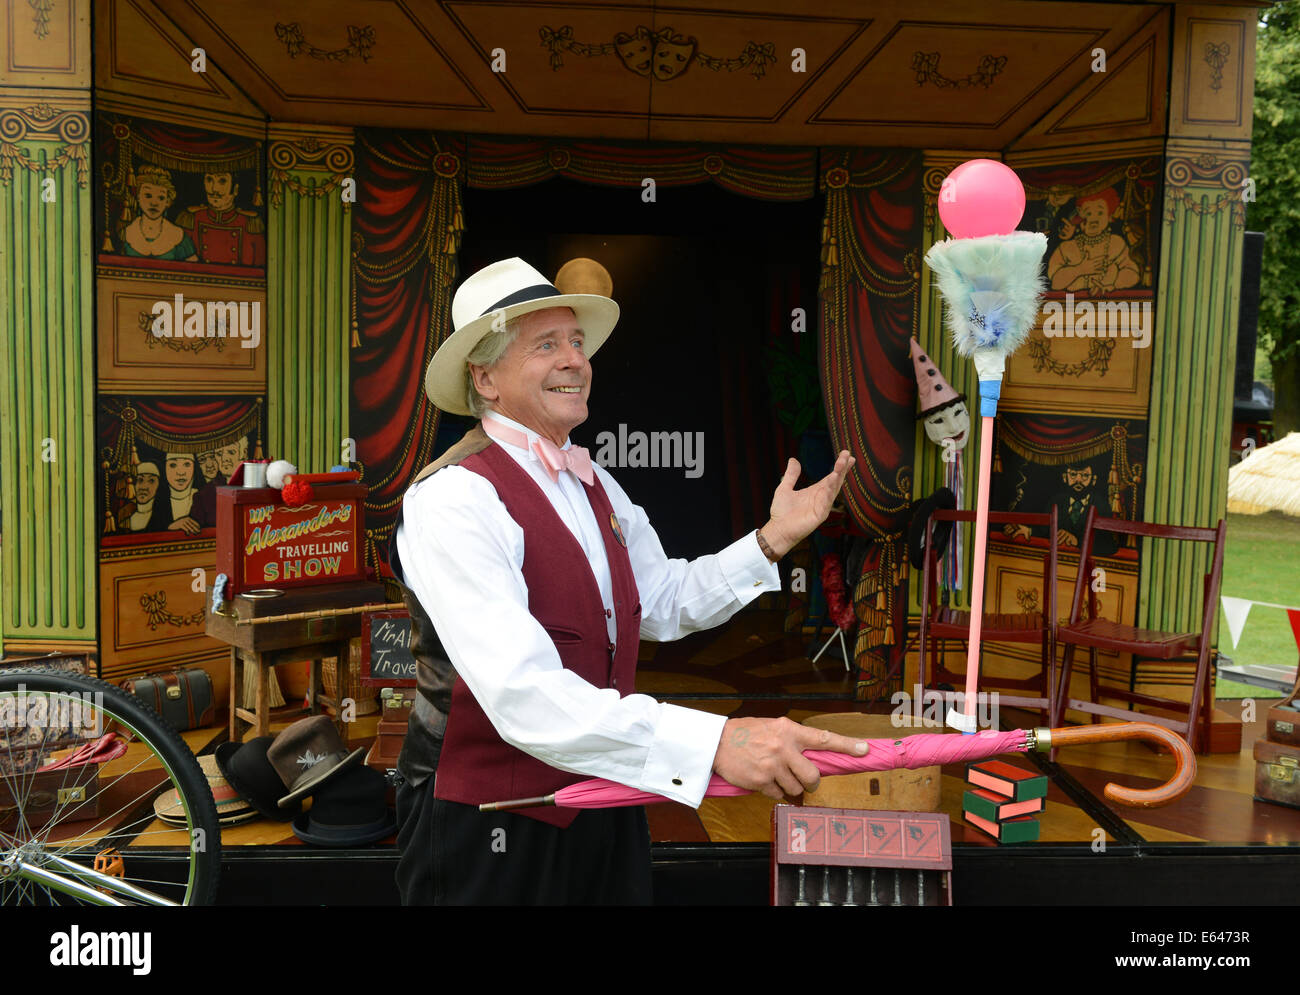 David Alexander childrens entertainer known as 'Mr Alexander Travelling Show' - Stock Image